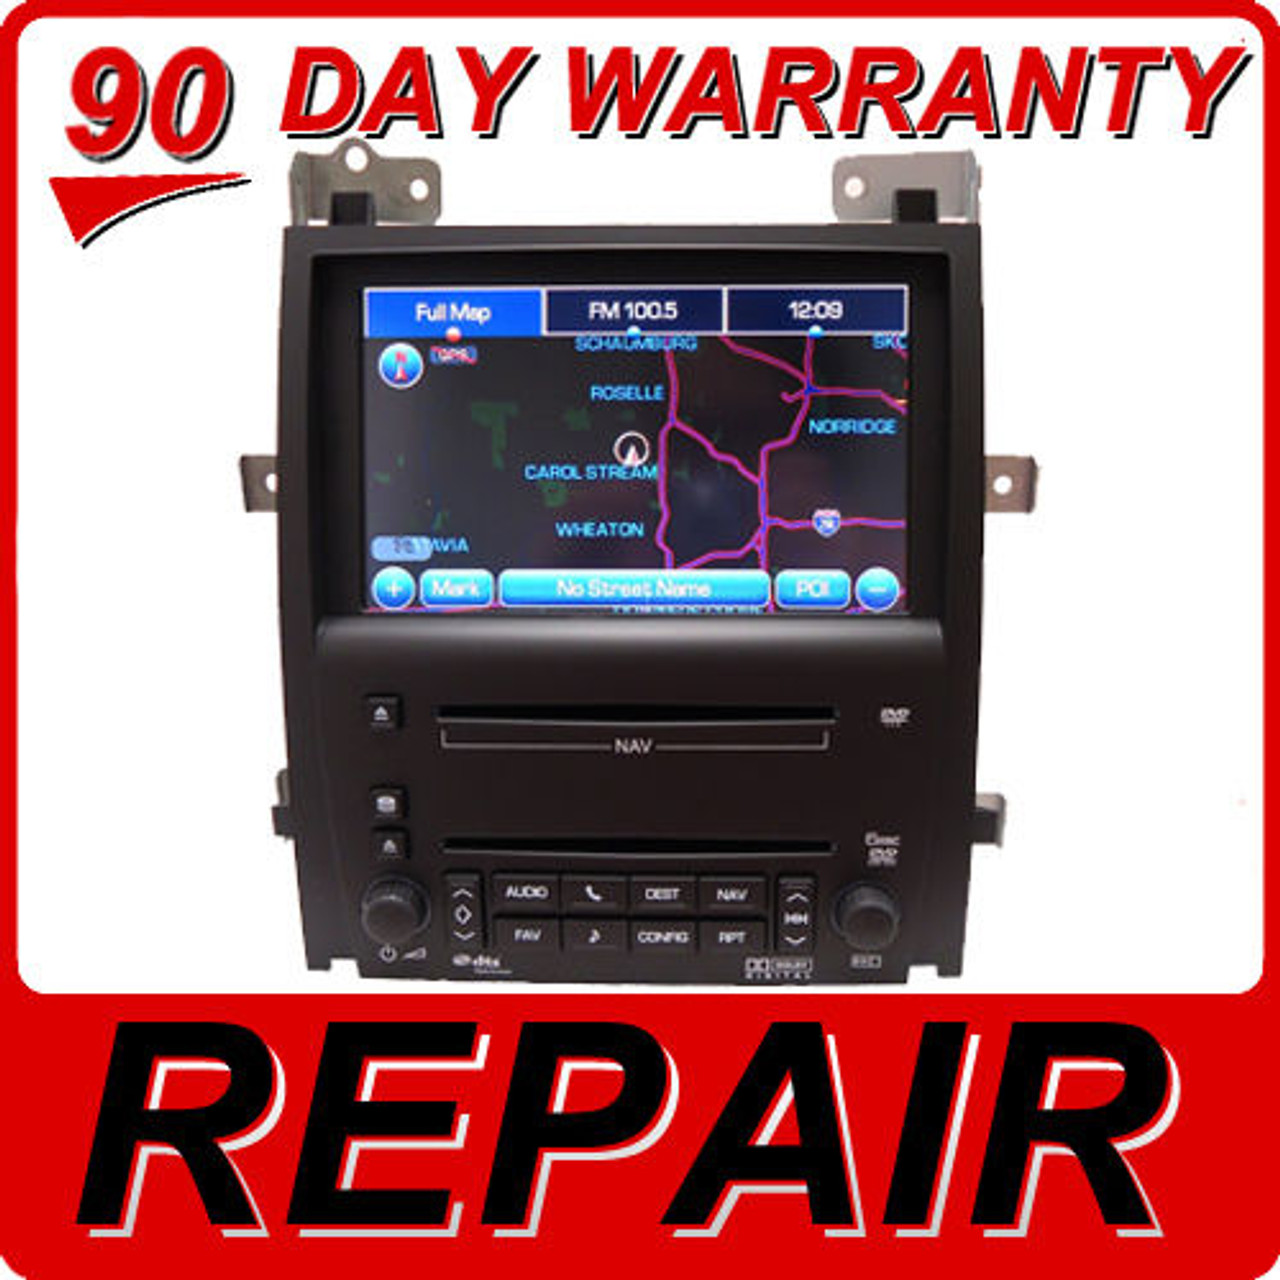 REPAIR SERVICE CADILLAC STS GPS NAVIGATION CD RADIO SUPERNAV GPS 6 DISC DVD  FIX